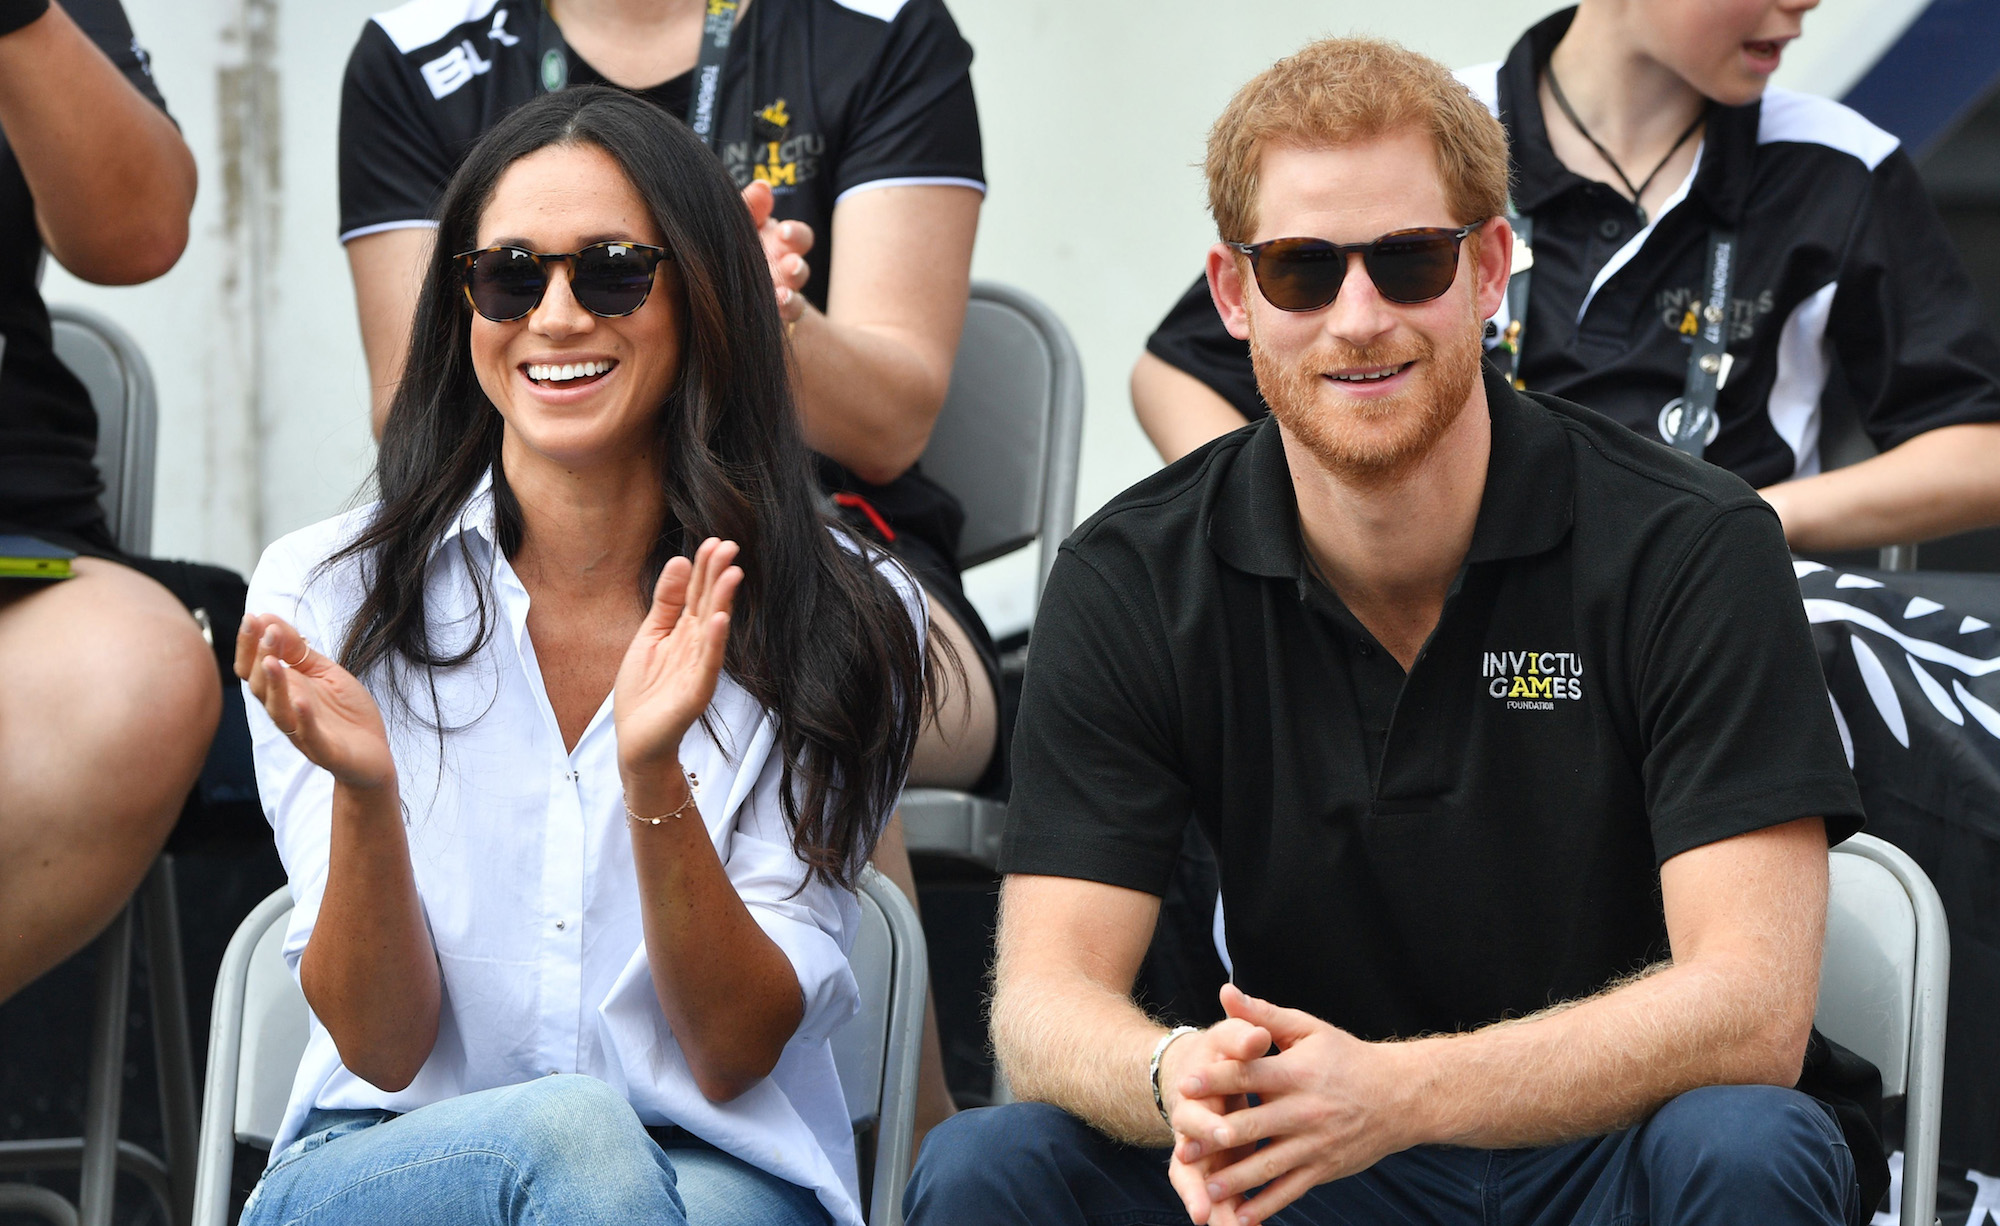 ceb2bbe23d Meghan Markle Just Crashed Another Fashion Brand s Website